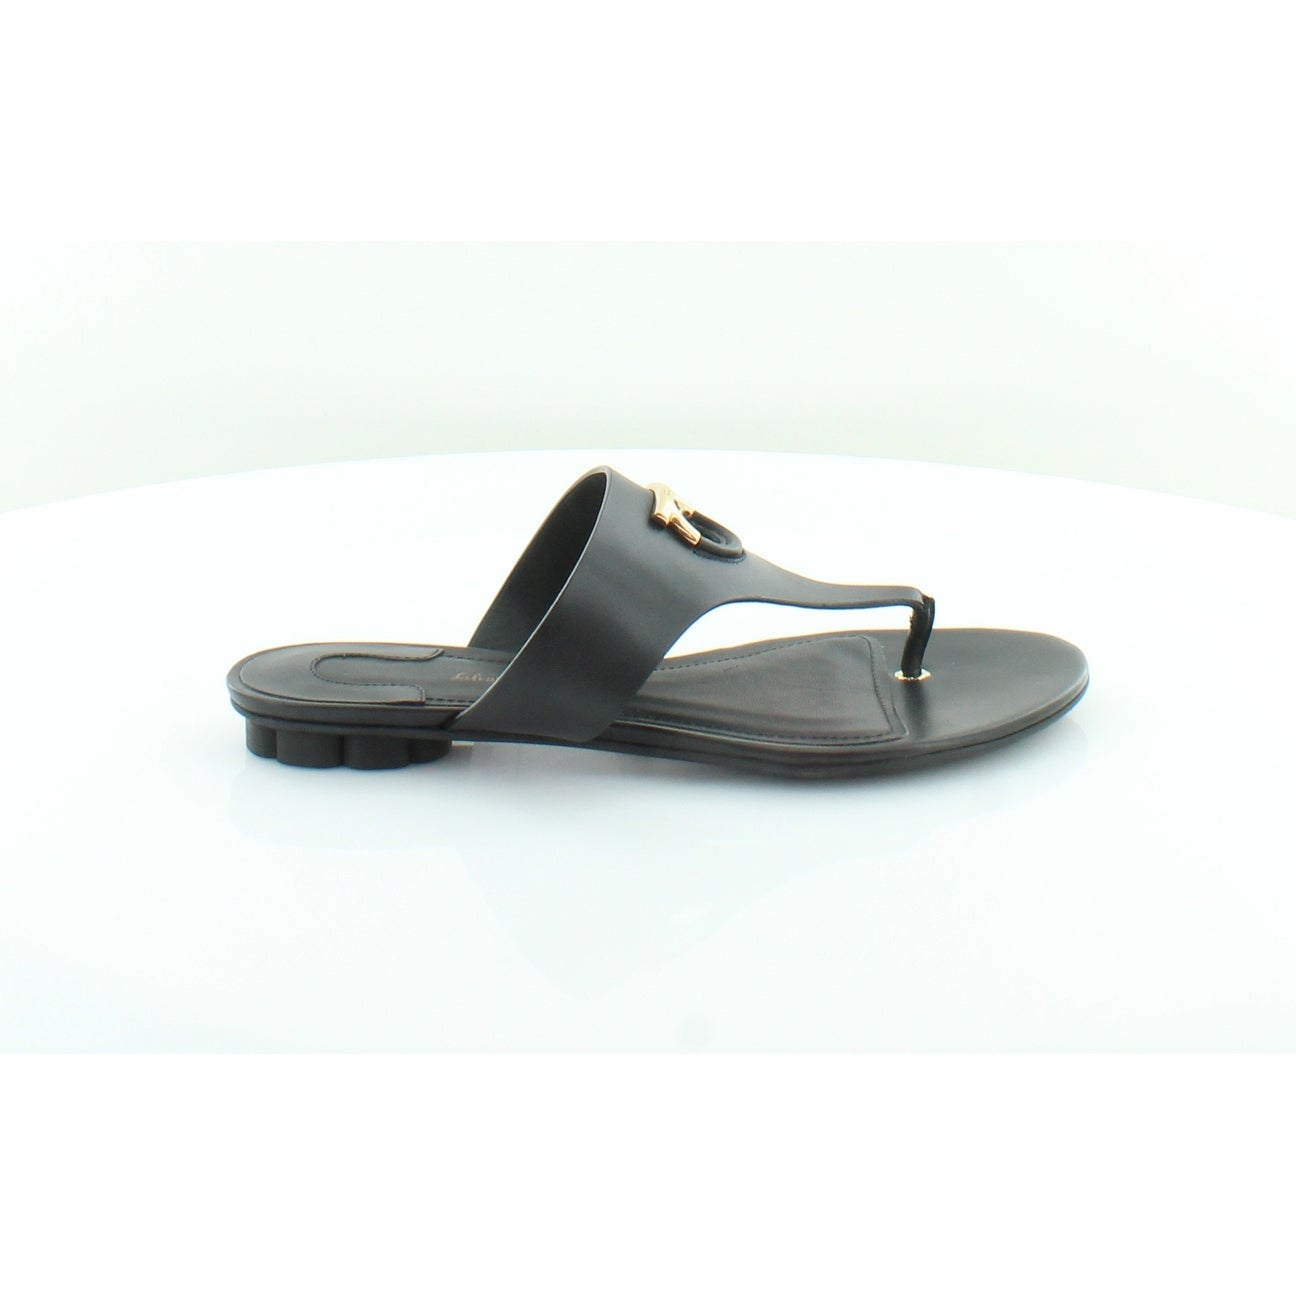 84190bcecb17 Shop Salvatore Ferragamo Enfola Women s Sandals Black - Free Shipping Today  - Overstock - 25637159